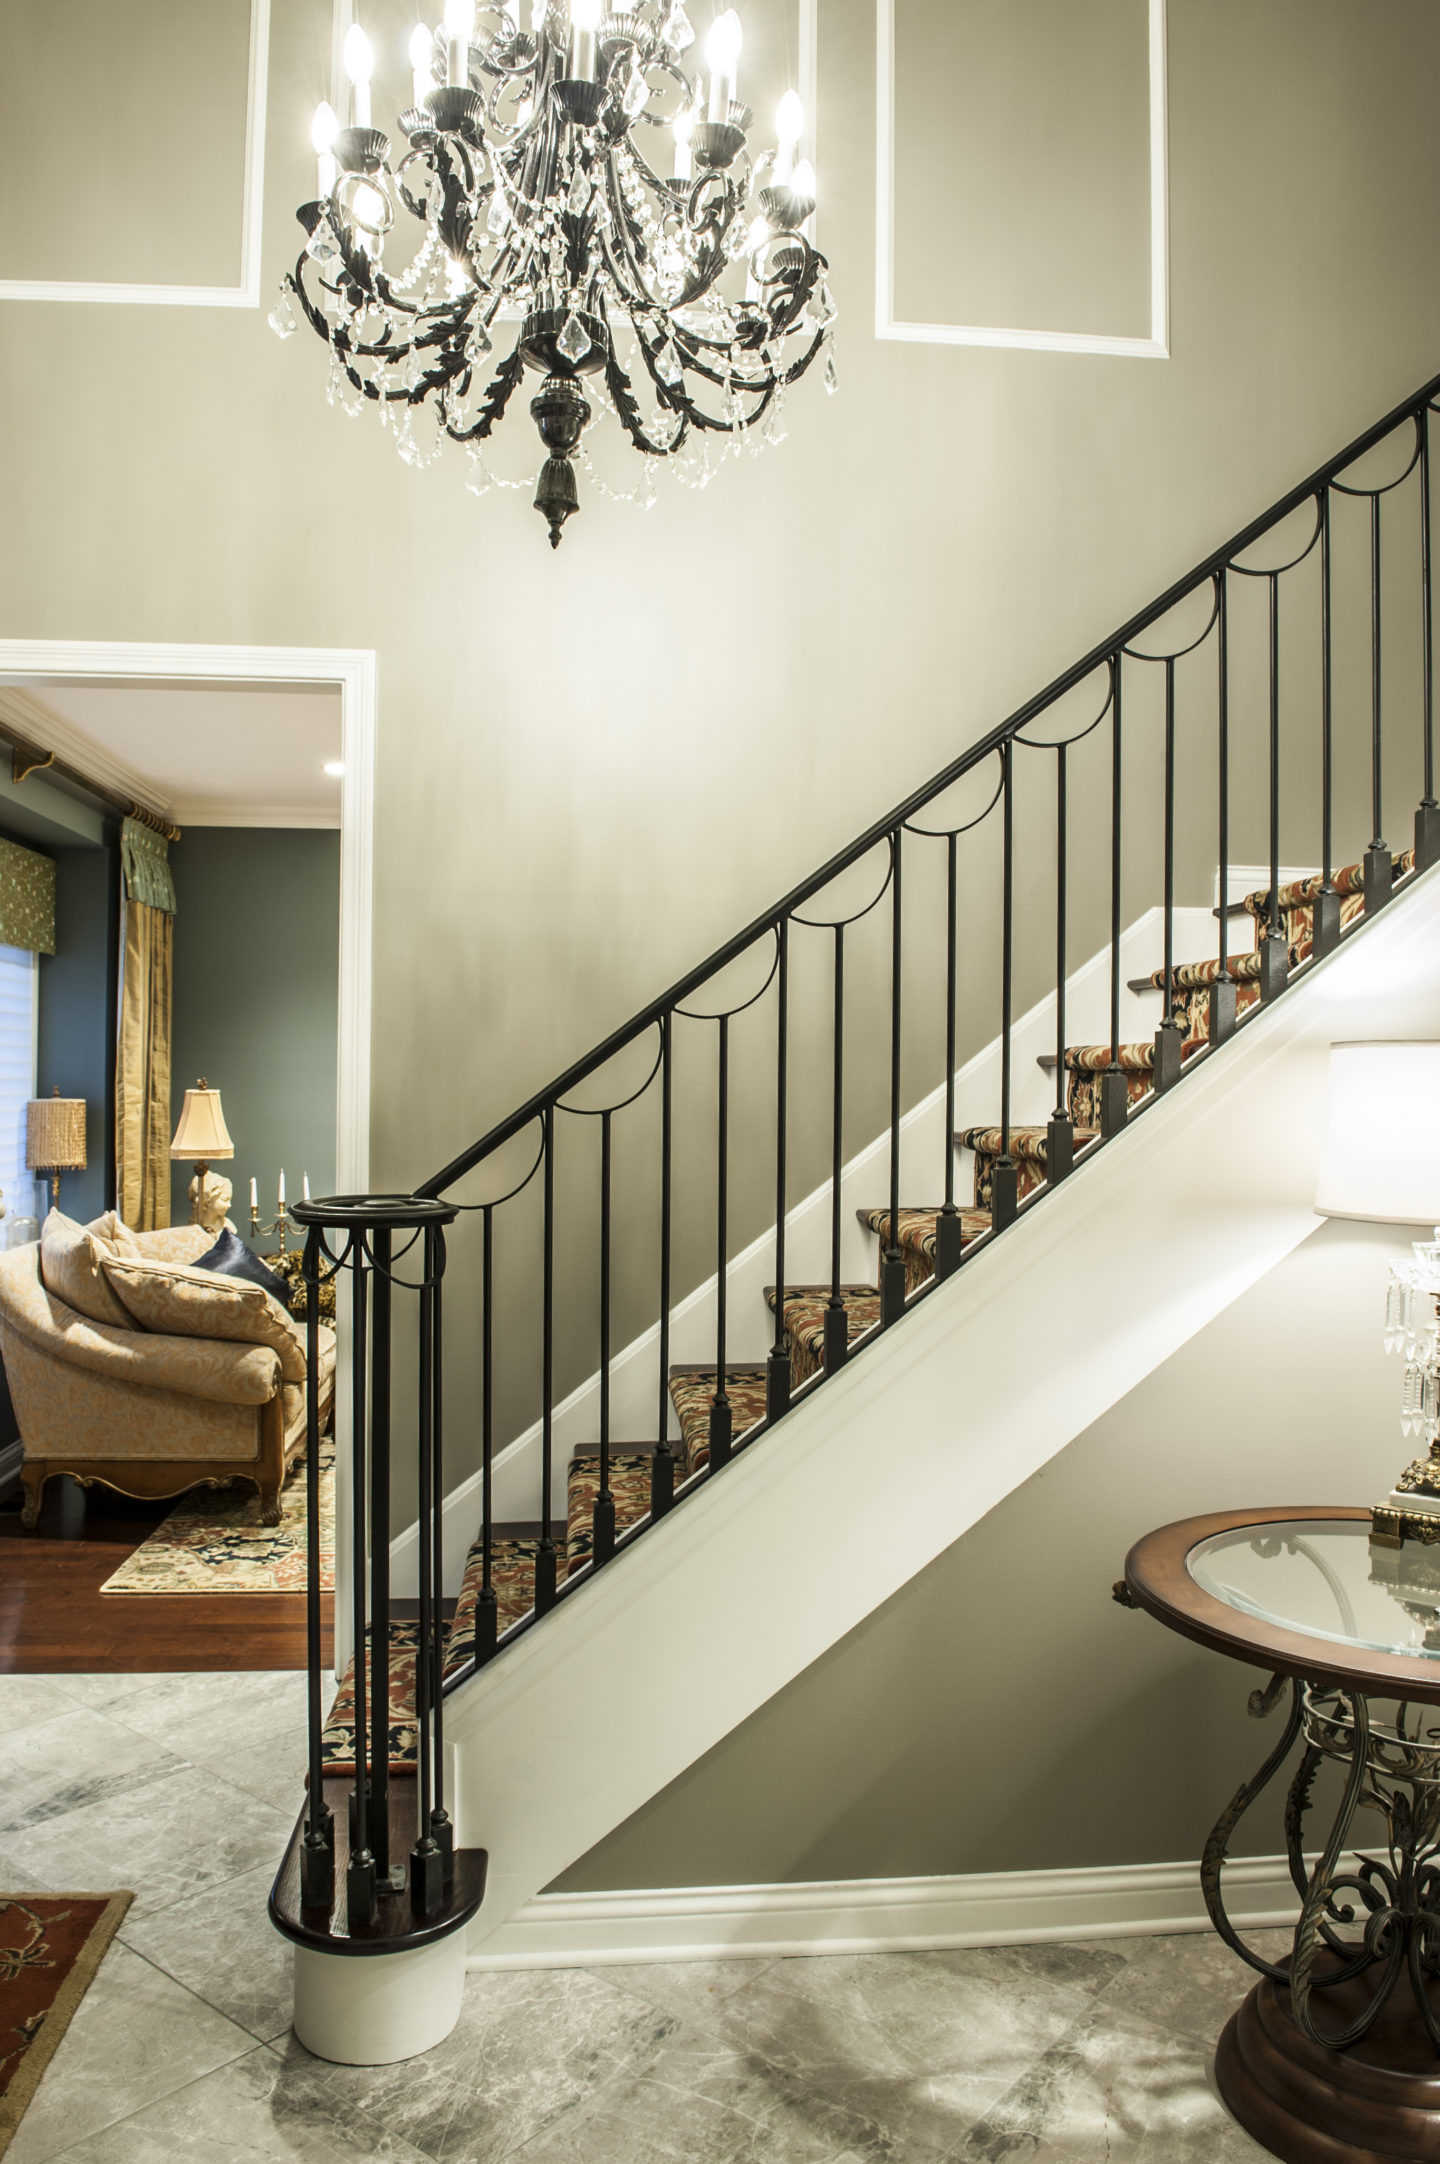 Looking for custom French Country residential droplet ...